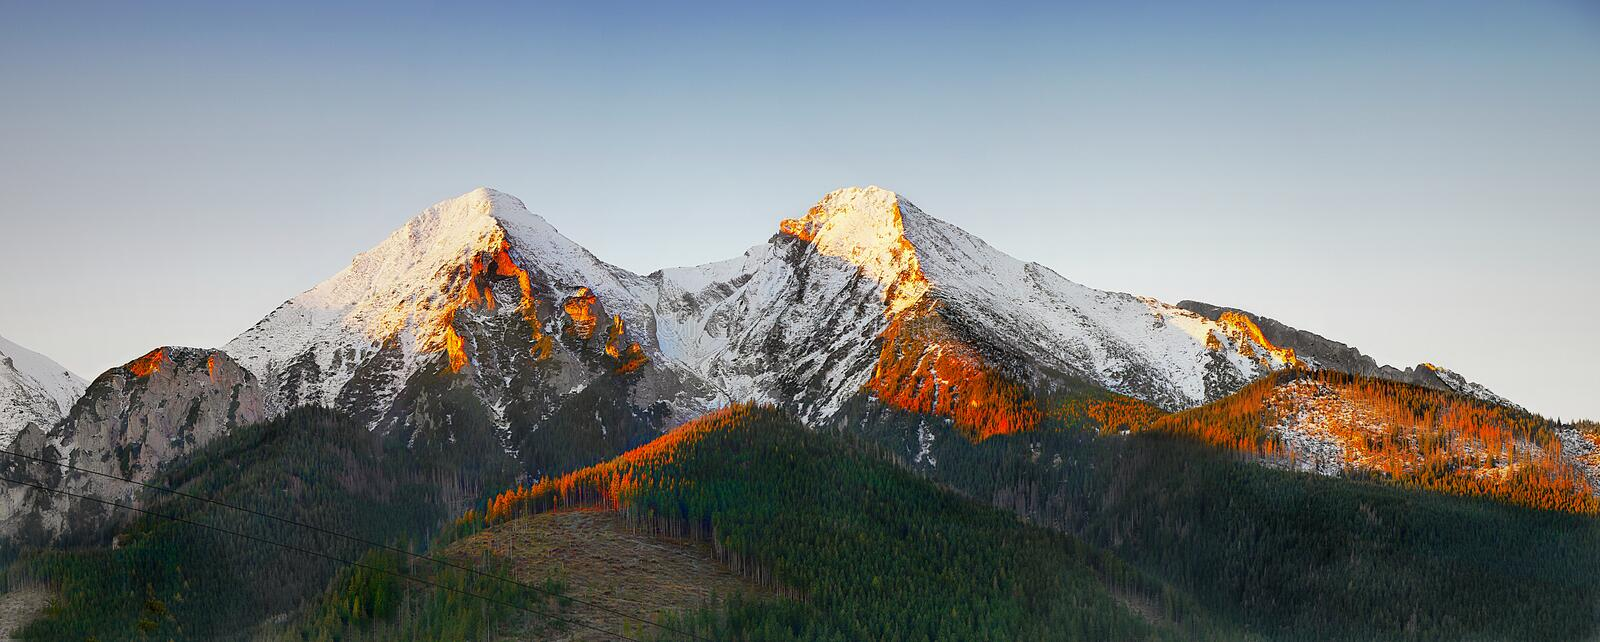 Mountains Scenic Landscape, Sunrise, Autumn Landscape royalty free stock photography